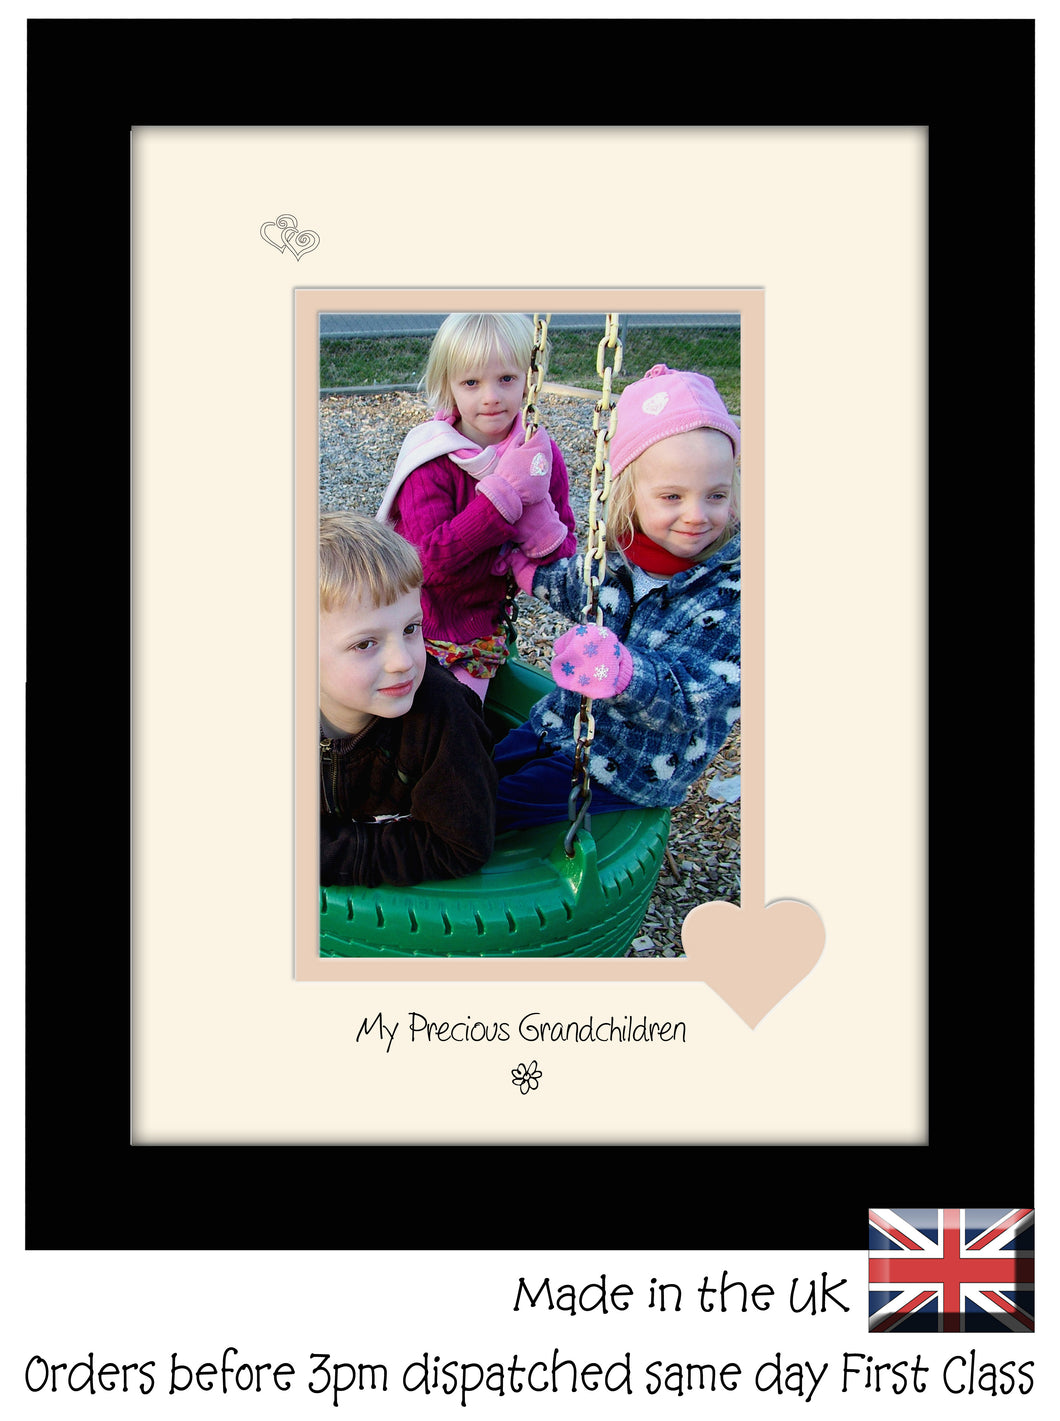 Grandchildren Photo Frame - My precious Grandchildren Portrait photo frame 6